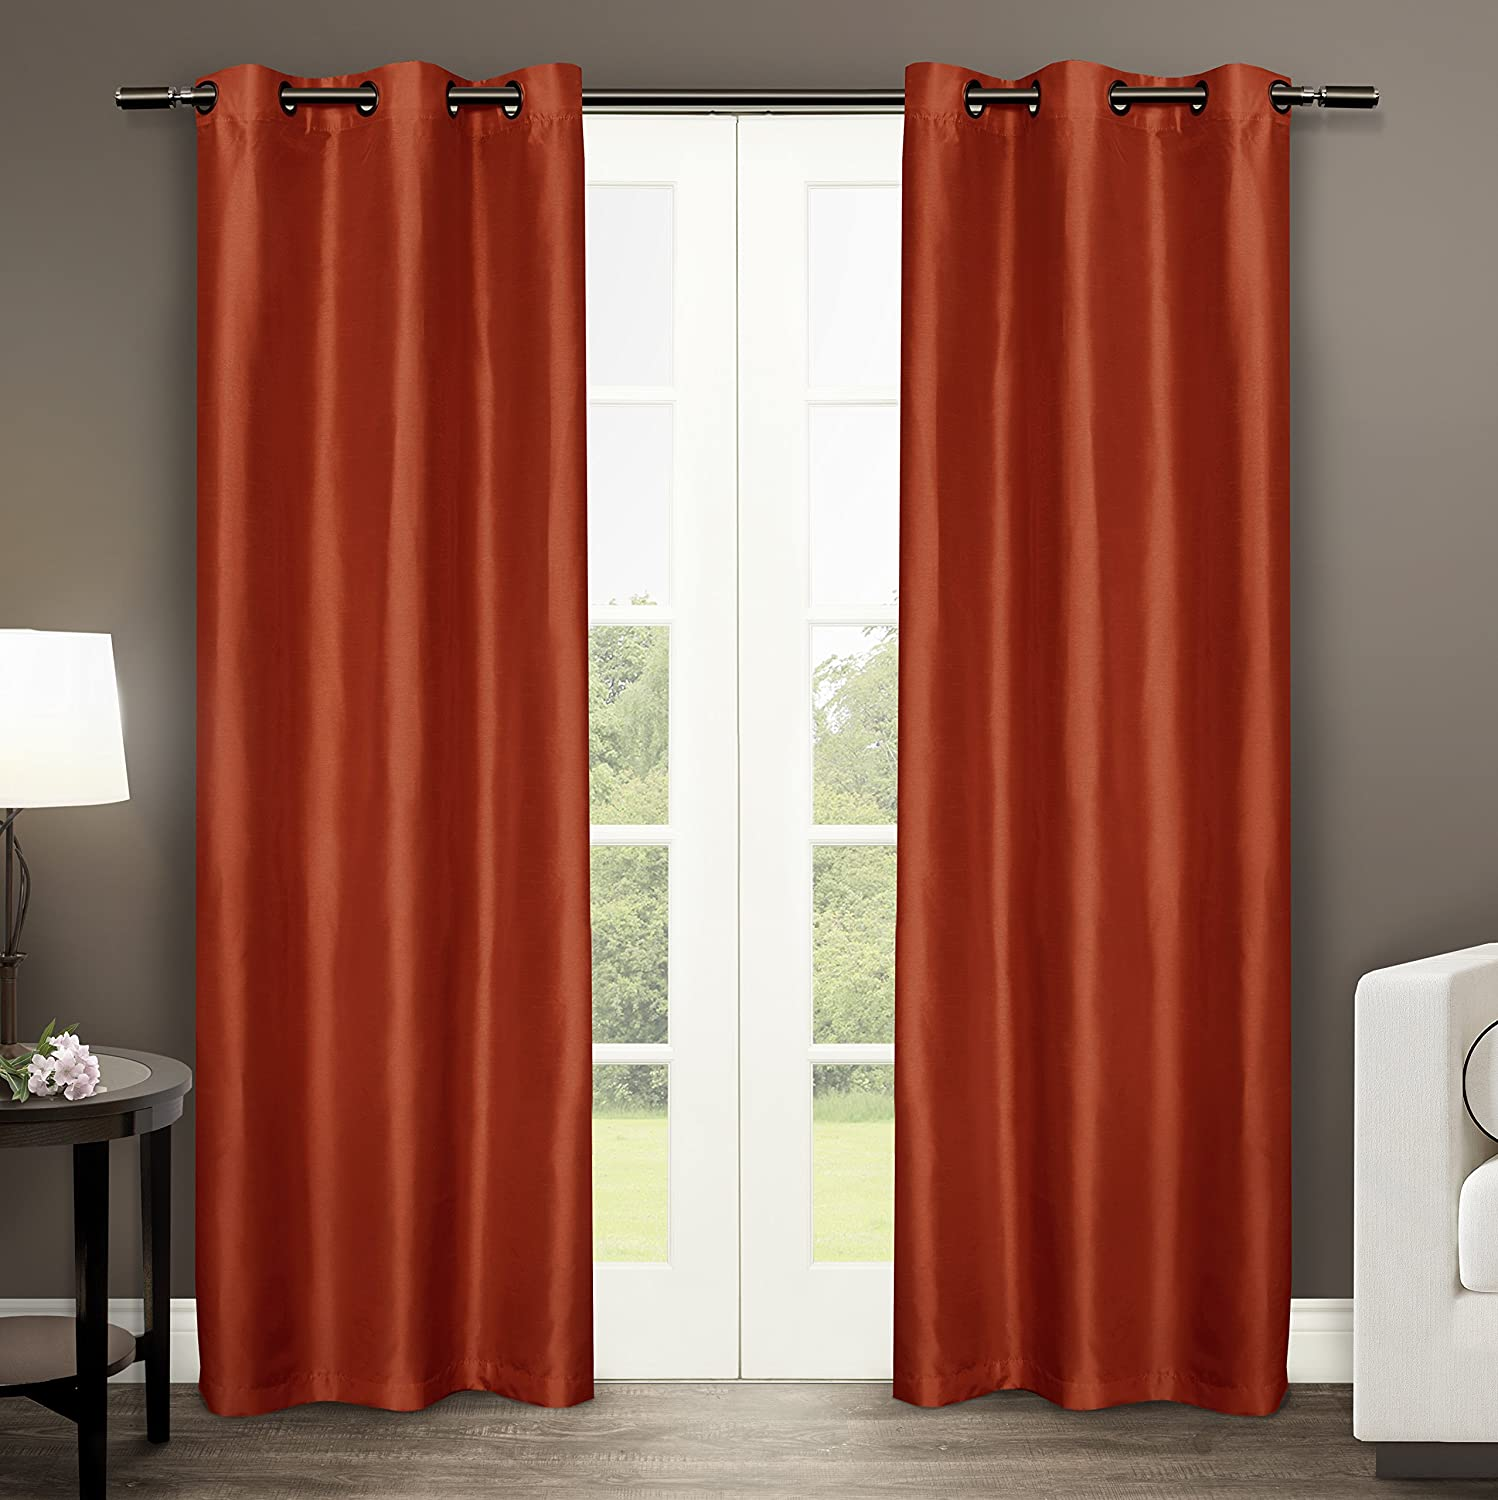 snazzy room curtain sleeper window added couch and covering chic natural cool well modern as decorating cushions ornate orange panels living inspiration wall painted curtains with ideas in white chevron treatment